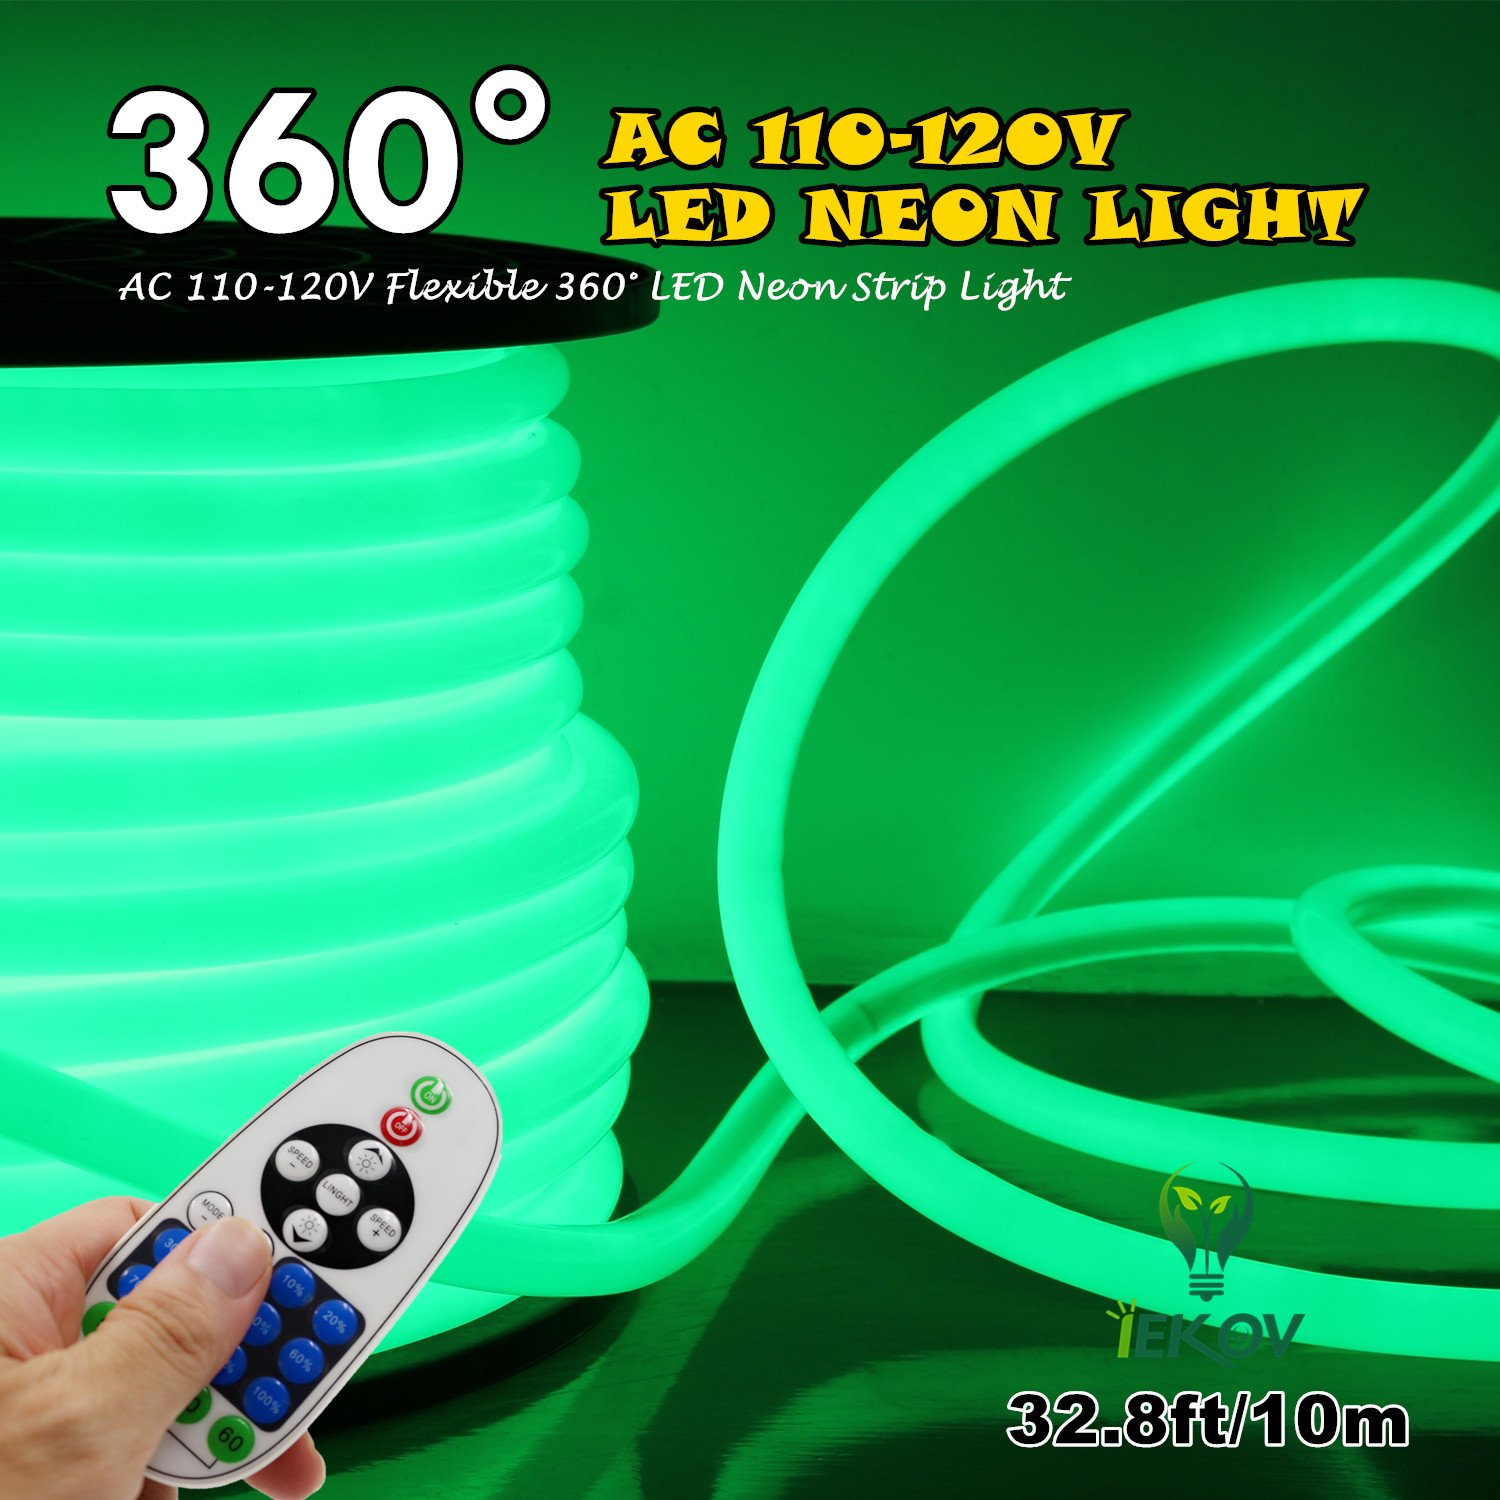 [Upgrade] 360° LED NEON Light, IEKOVTM AC 110-120V Flexible 360 Degree LED Neon Strip Lights, Dimmable & Waterproof NEON LED Rope Light + Remote Controller for Decoration (32.8ft/10m, Green)